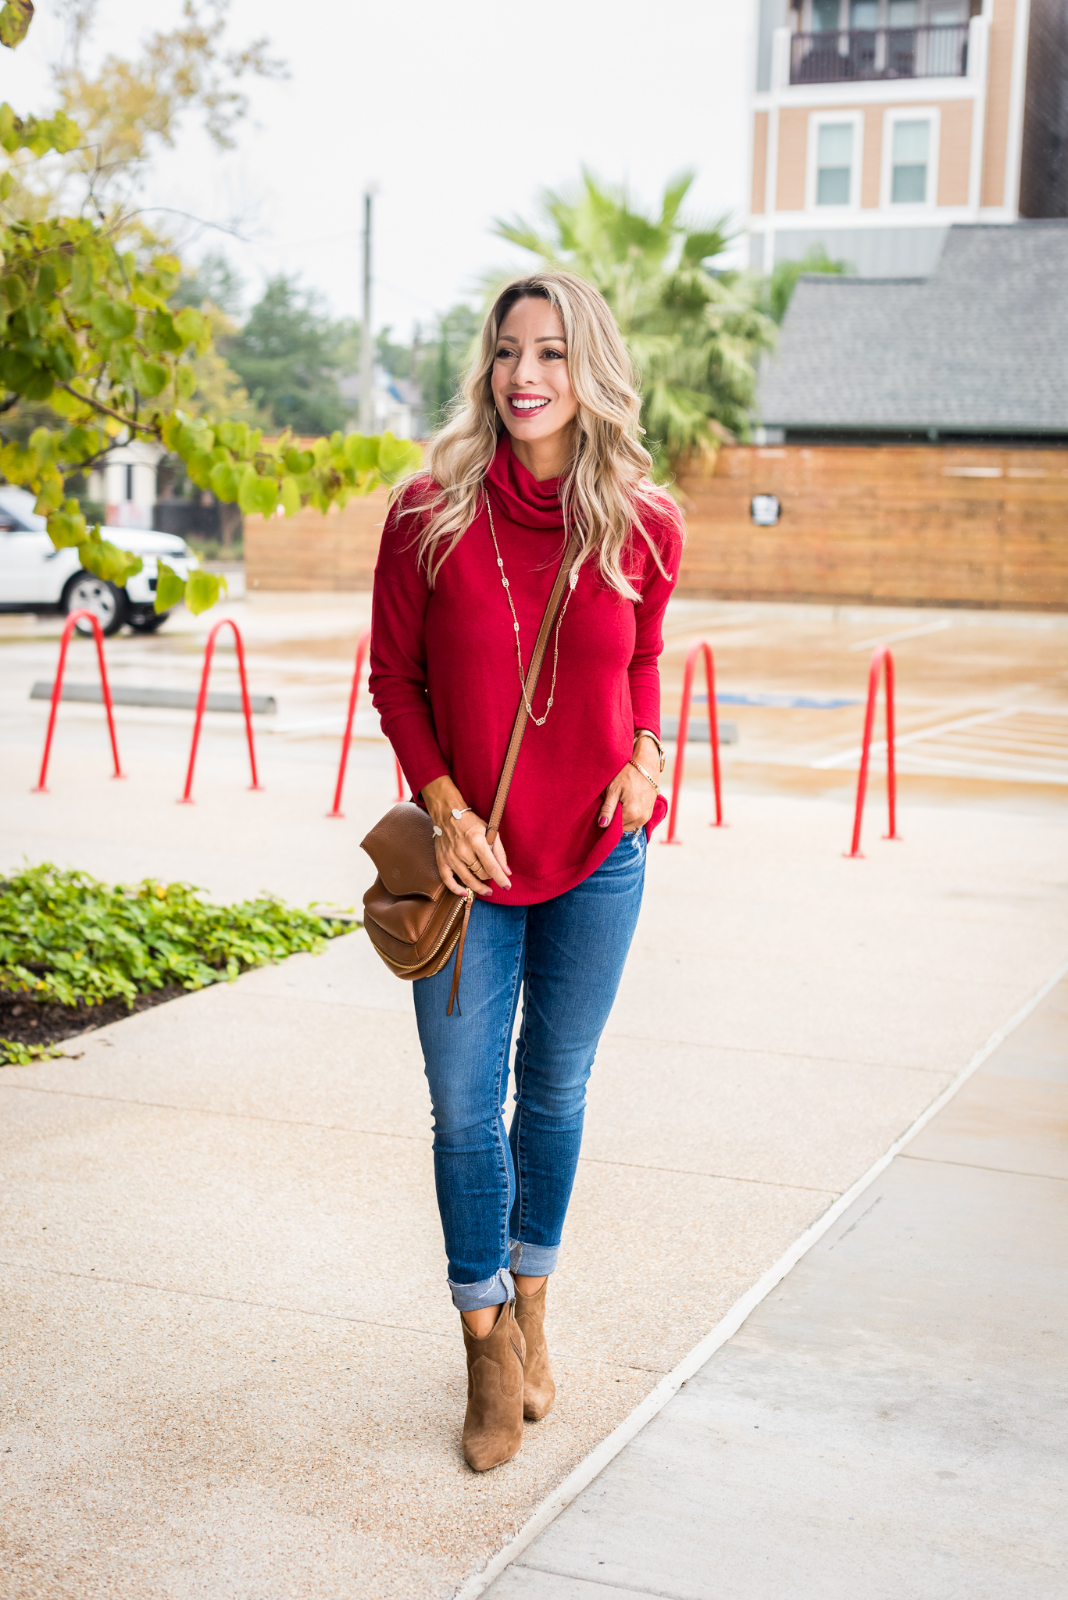 Winter outfit - red sweater jeans and brown booties